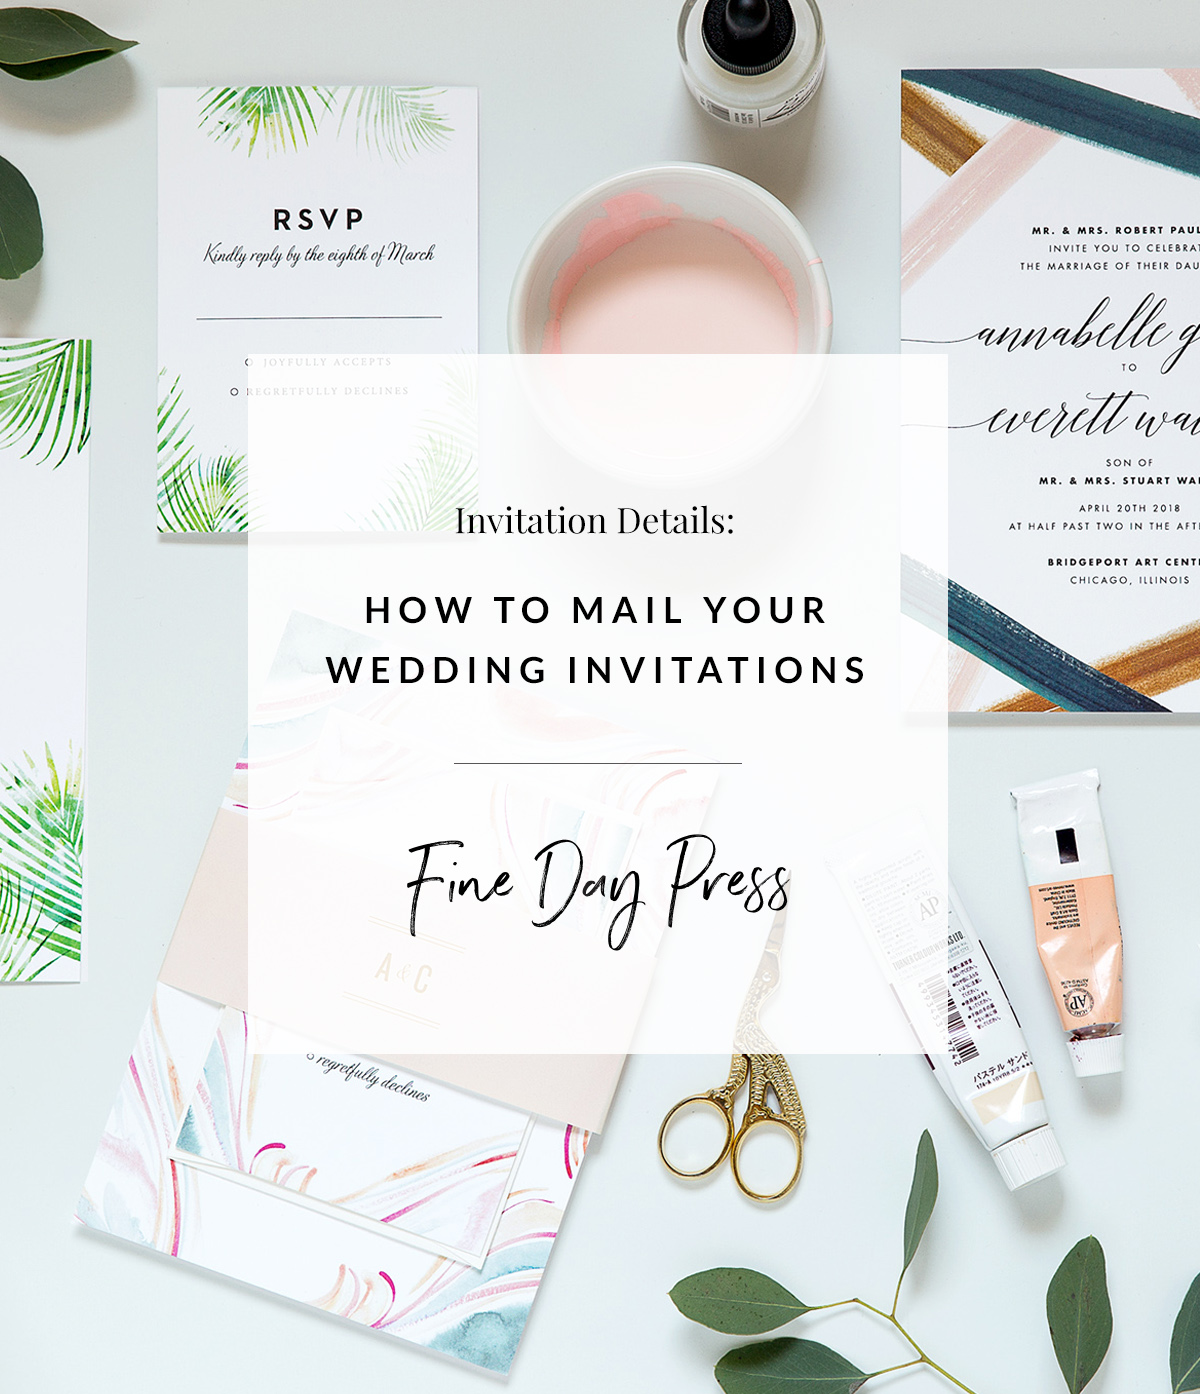 How to Mail Wedding Invitations - Fine Day Press